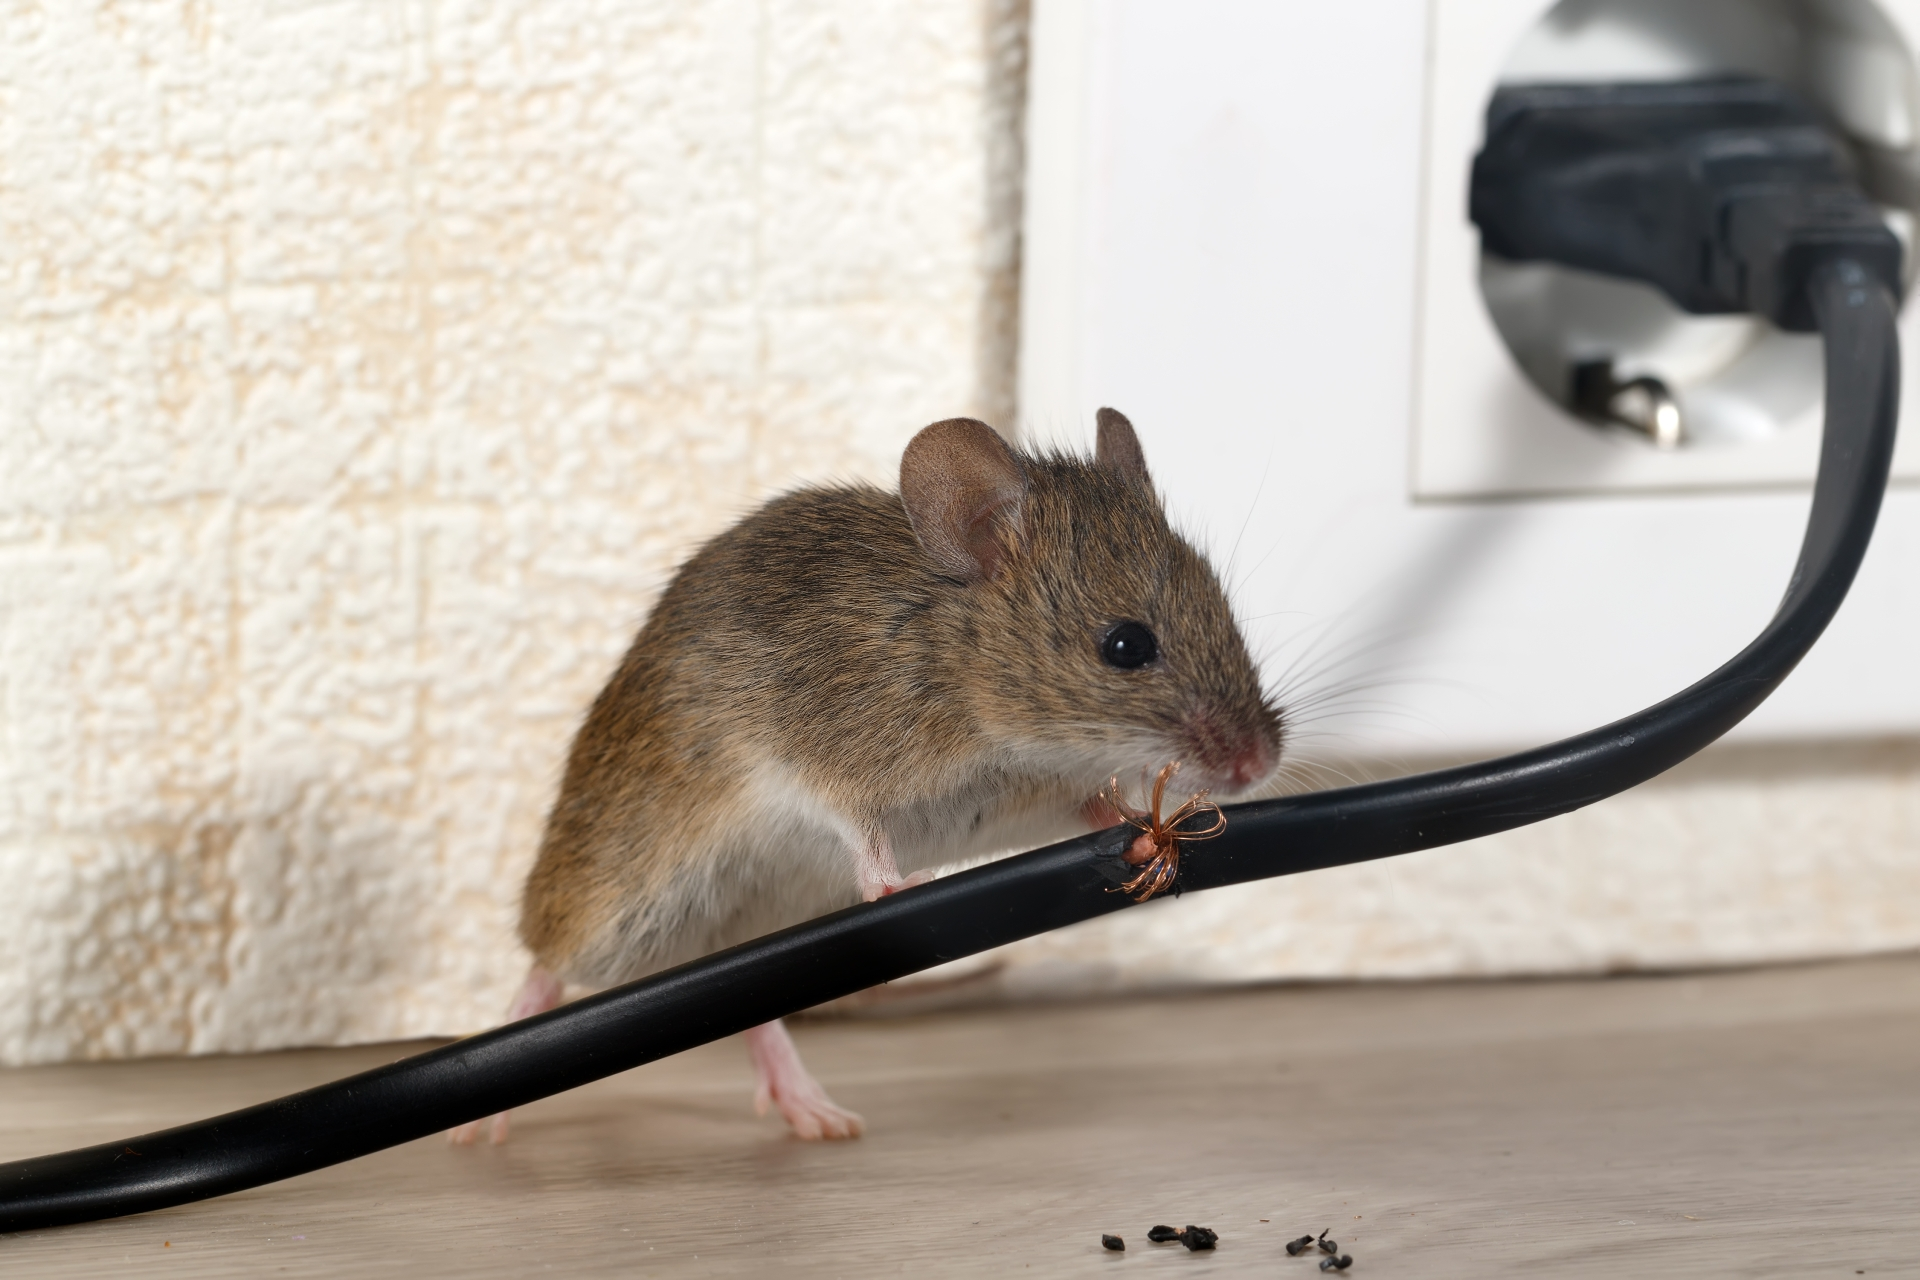 Mice Infestation, Pest Control in West Drayton, Harmondsworth, Sipson, UB7. Call Now 020 8166 9746